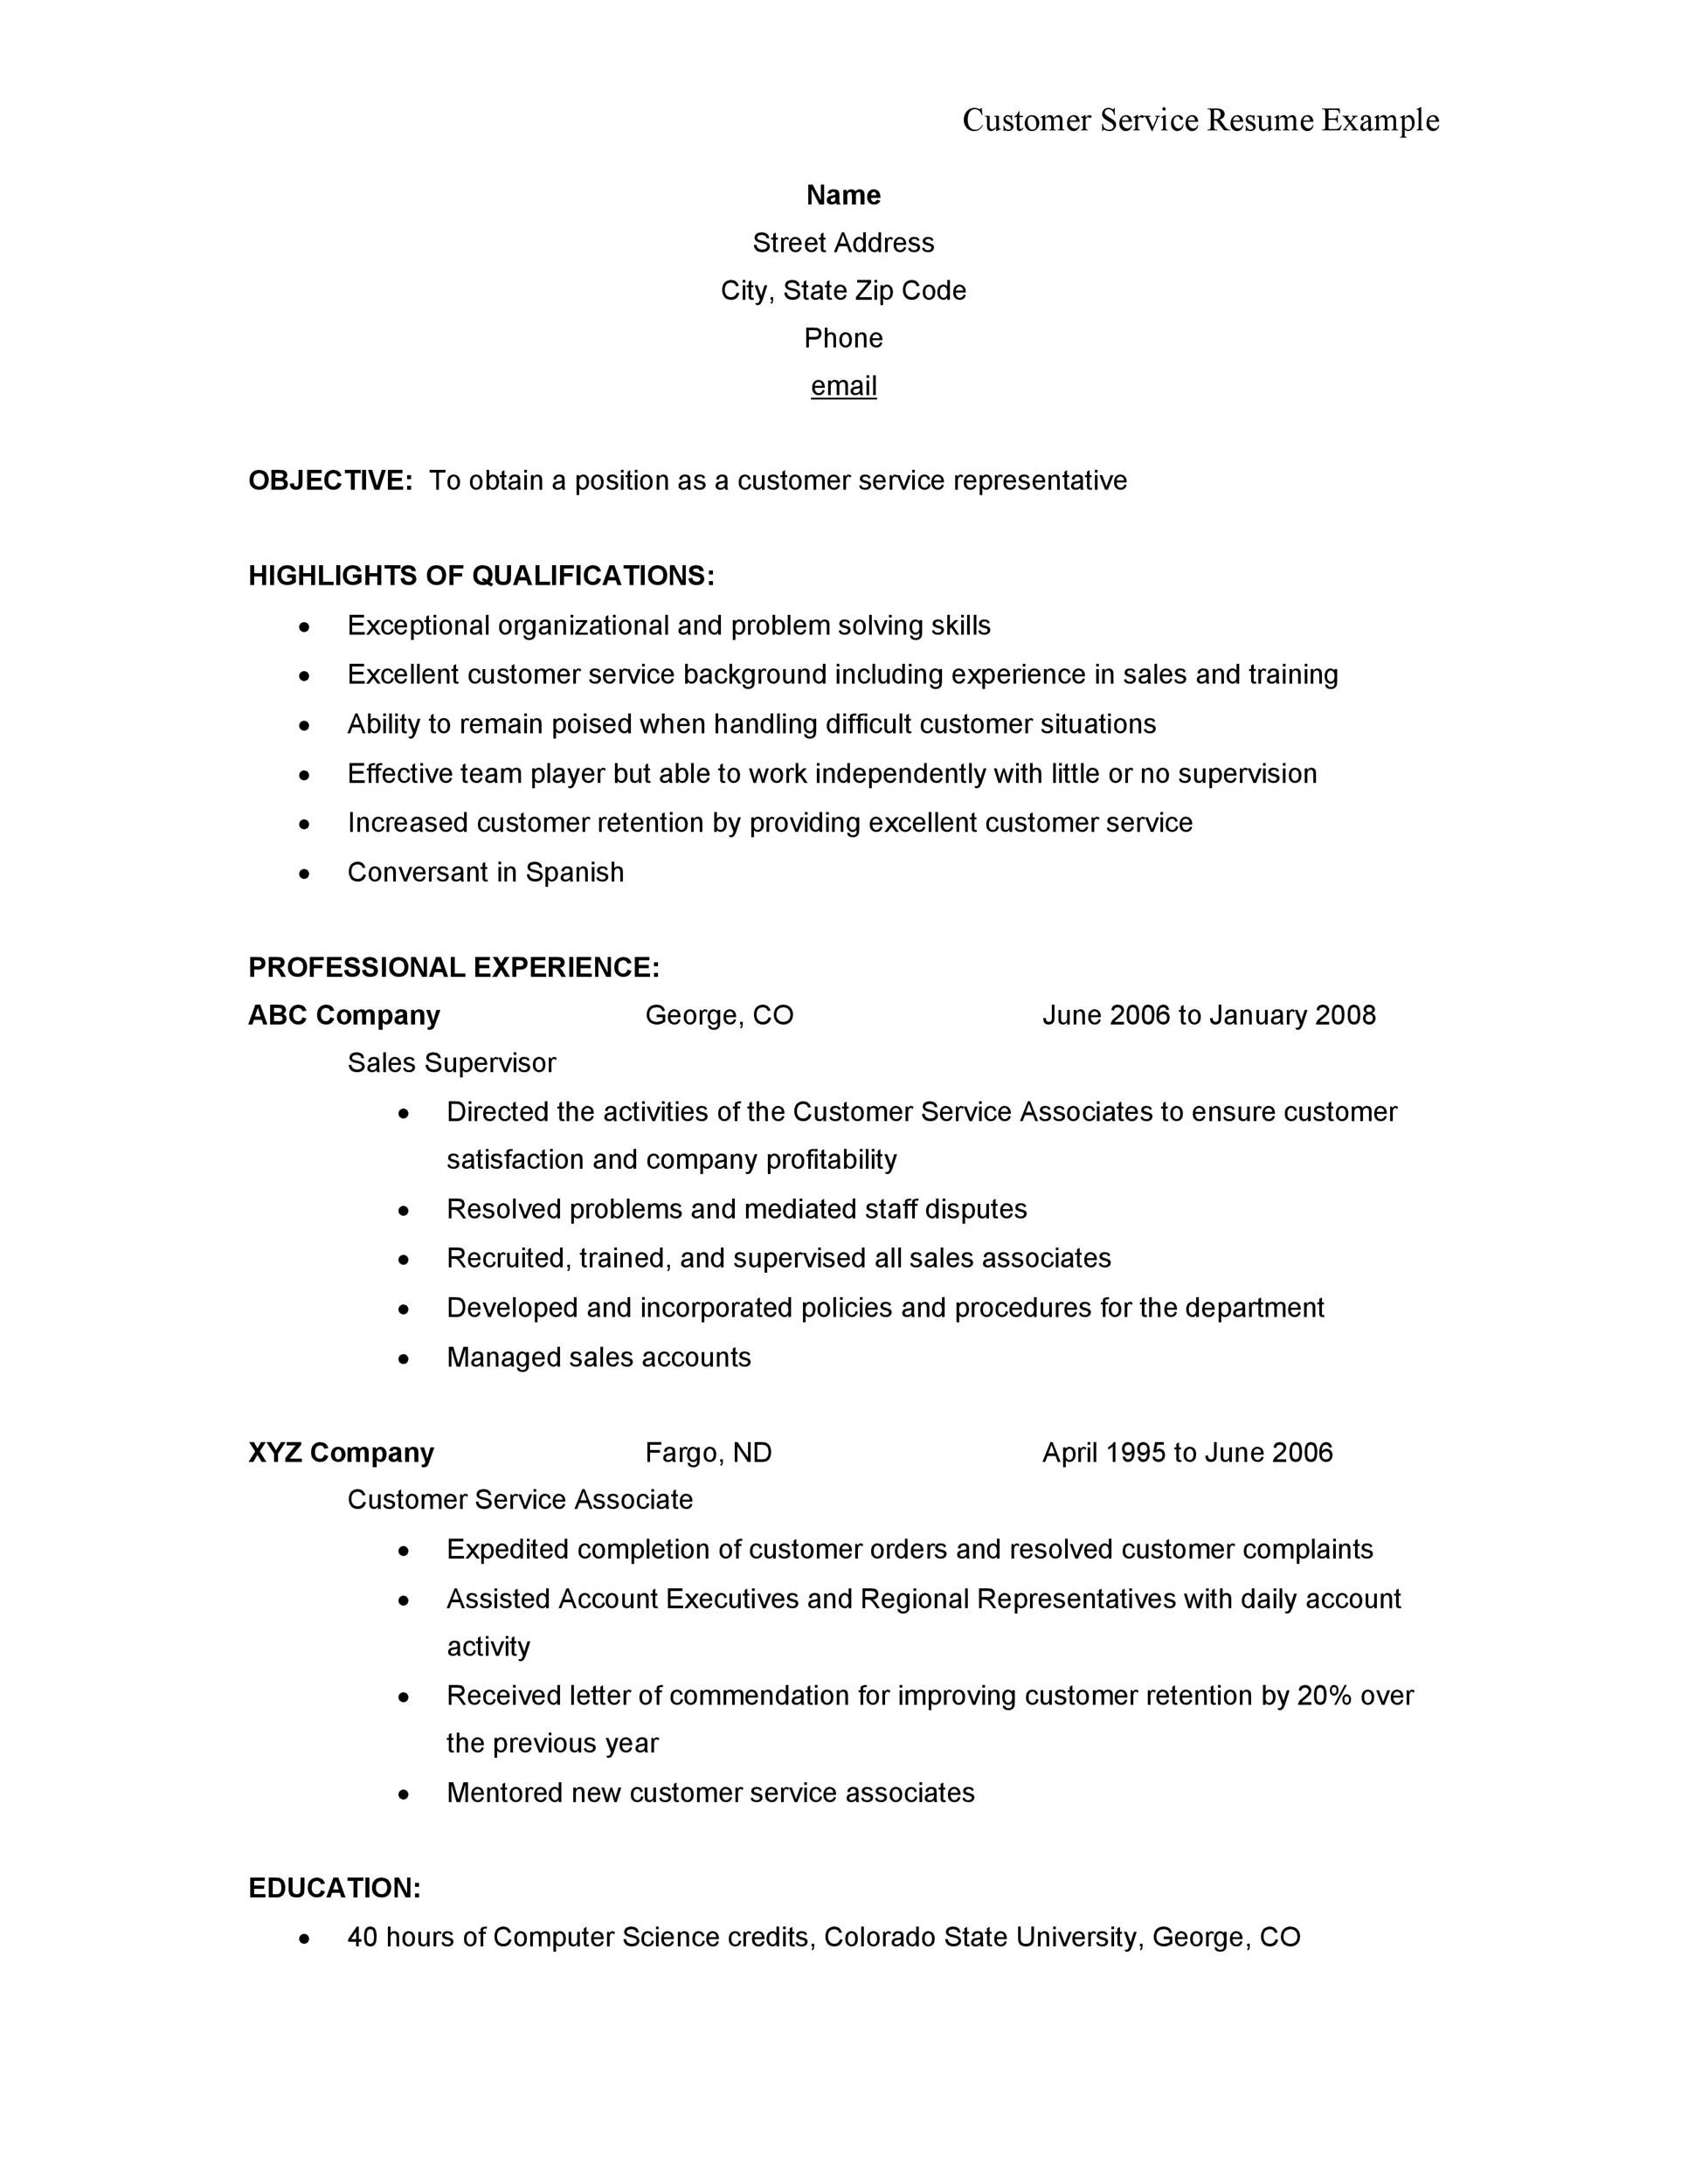 Free Customer Service Resume Template 22